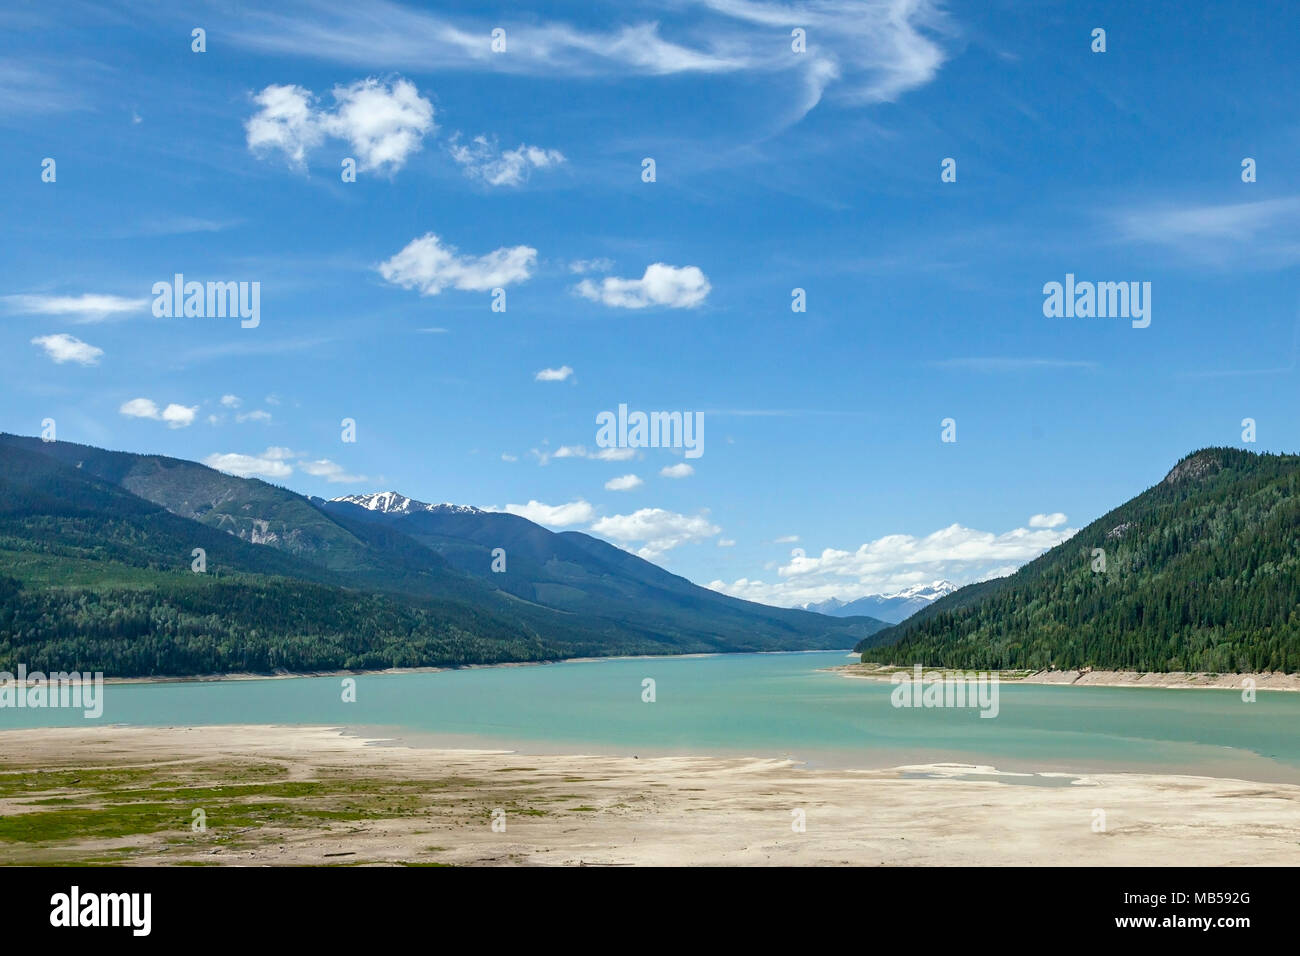 Bow River, Canada - Stock Image